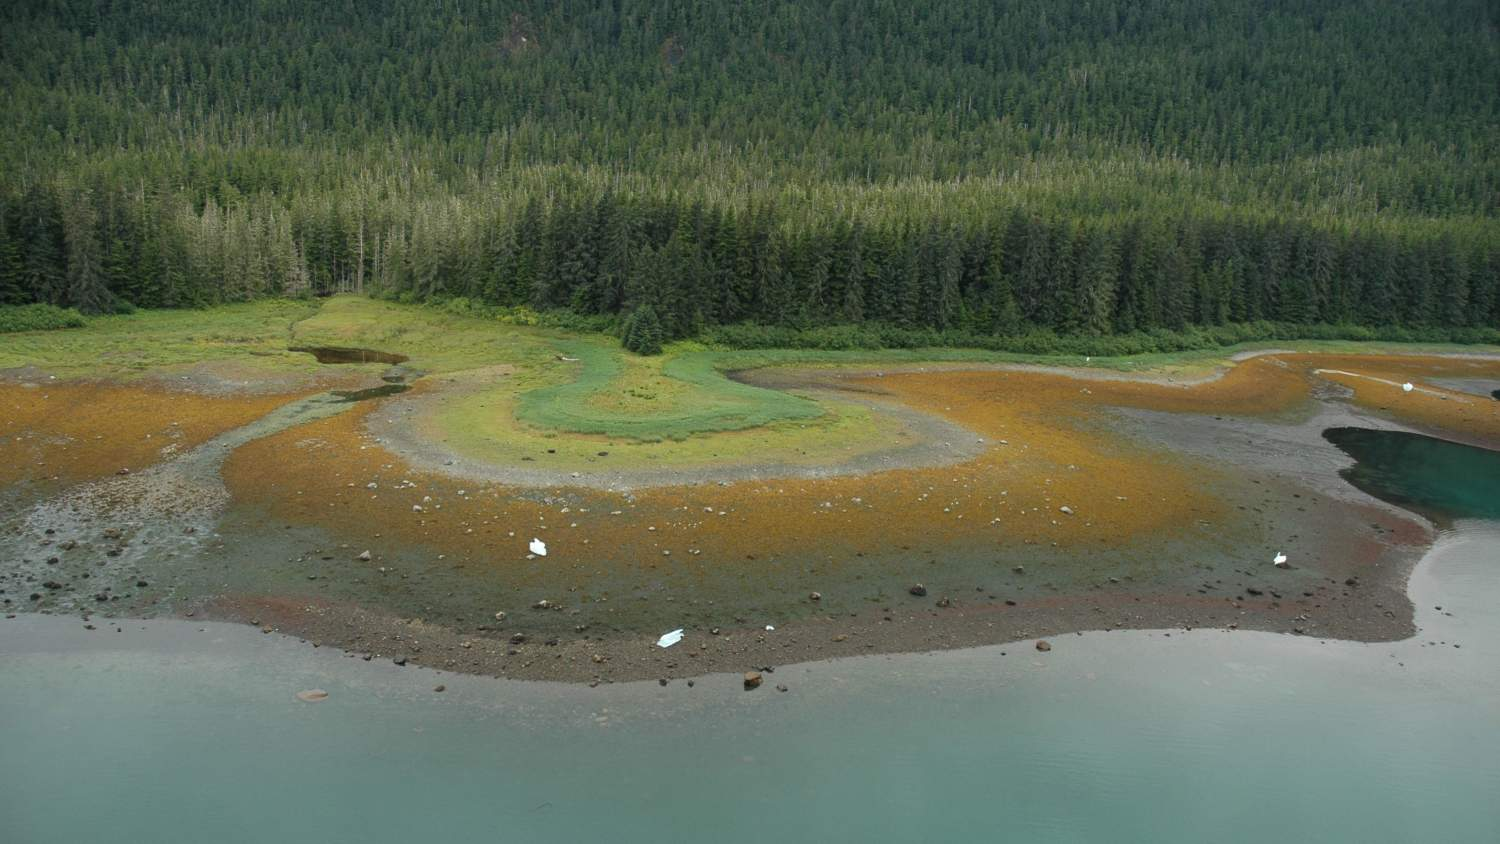 Aerial photograph. A kaleidoscopic shoreline with bands of red and orange algae in the low tide zone, blocks of ice on the shore, and varying shades of green in the terrestrial flora. Alaska, Sitka Sound.